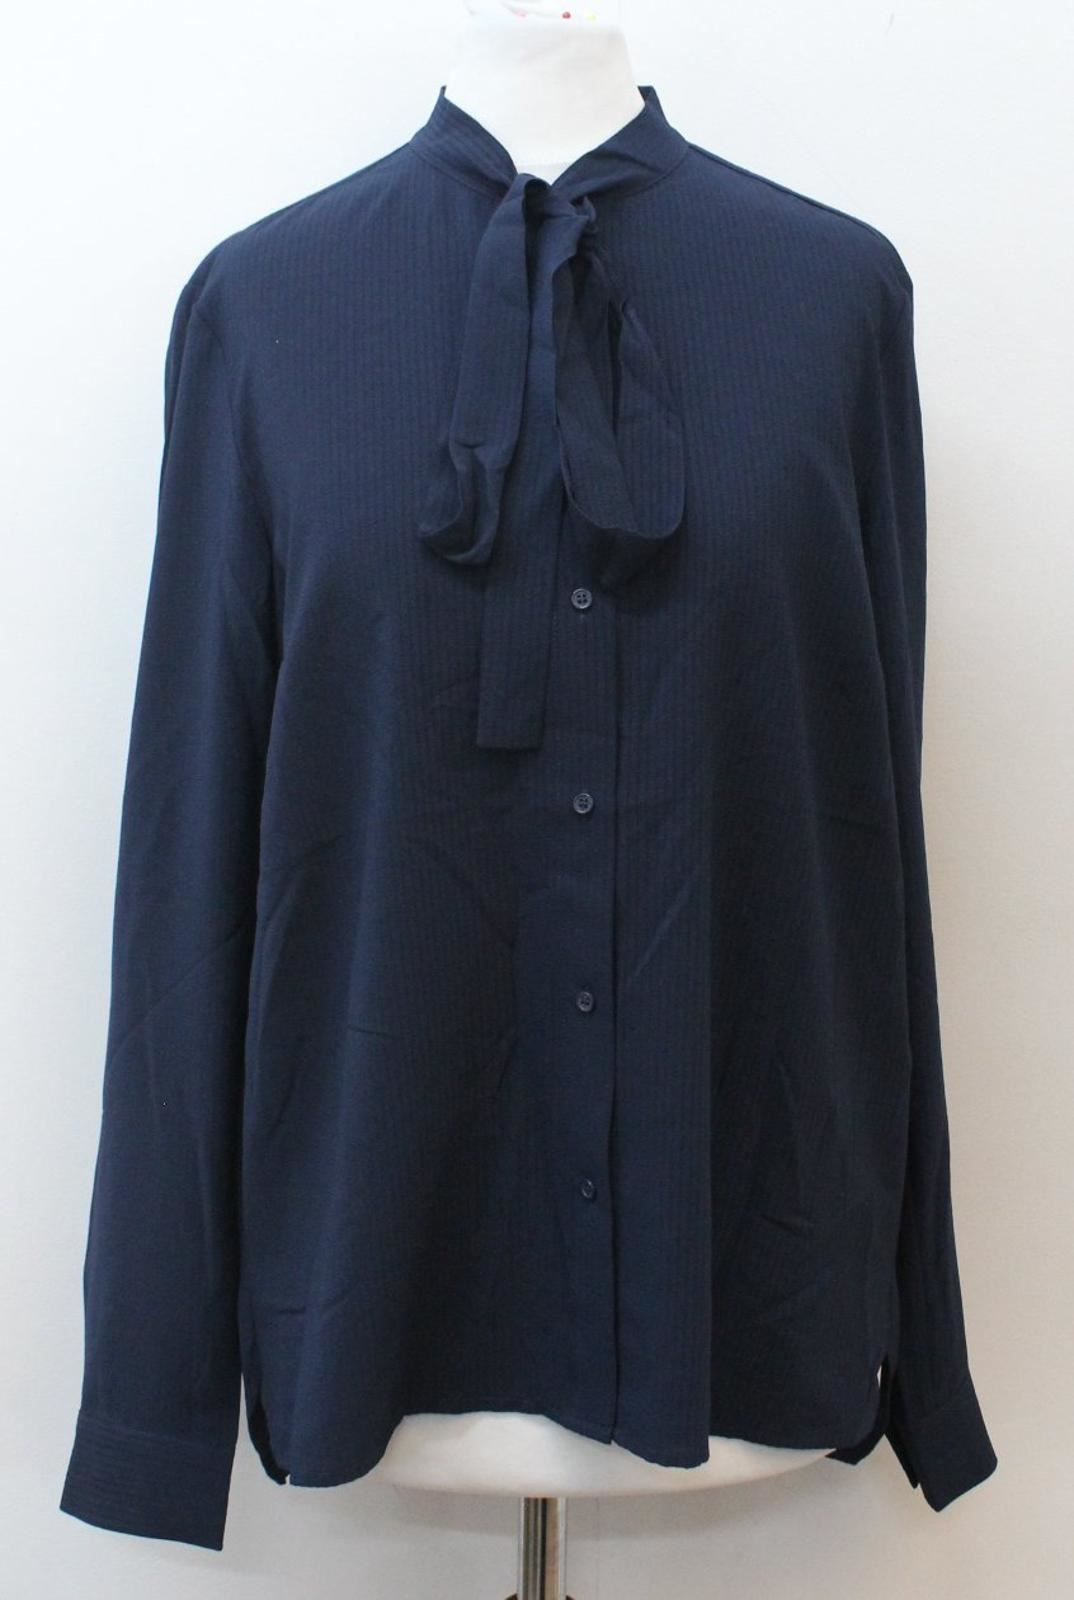 BNWT FRENCH CONNECTION Ladies Navy bluee Pinstripe Pussybow Blouse UK10 EU38